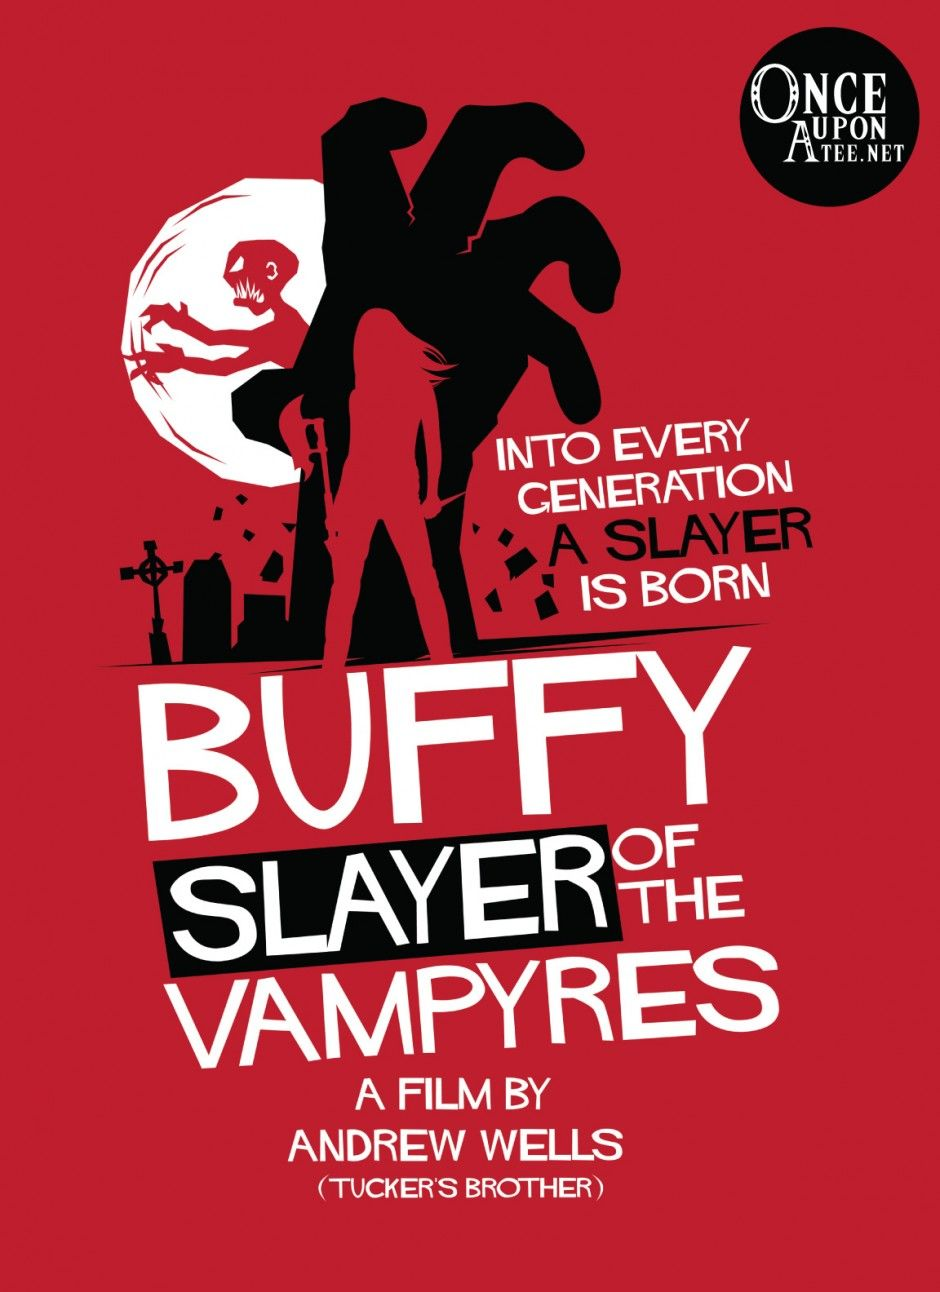 Buffy, Slayer of the Vampyres on Once Upon a Tee until 9/15/13.